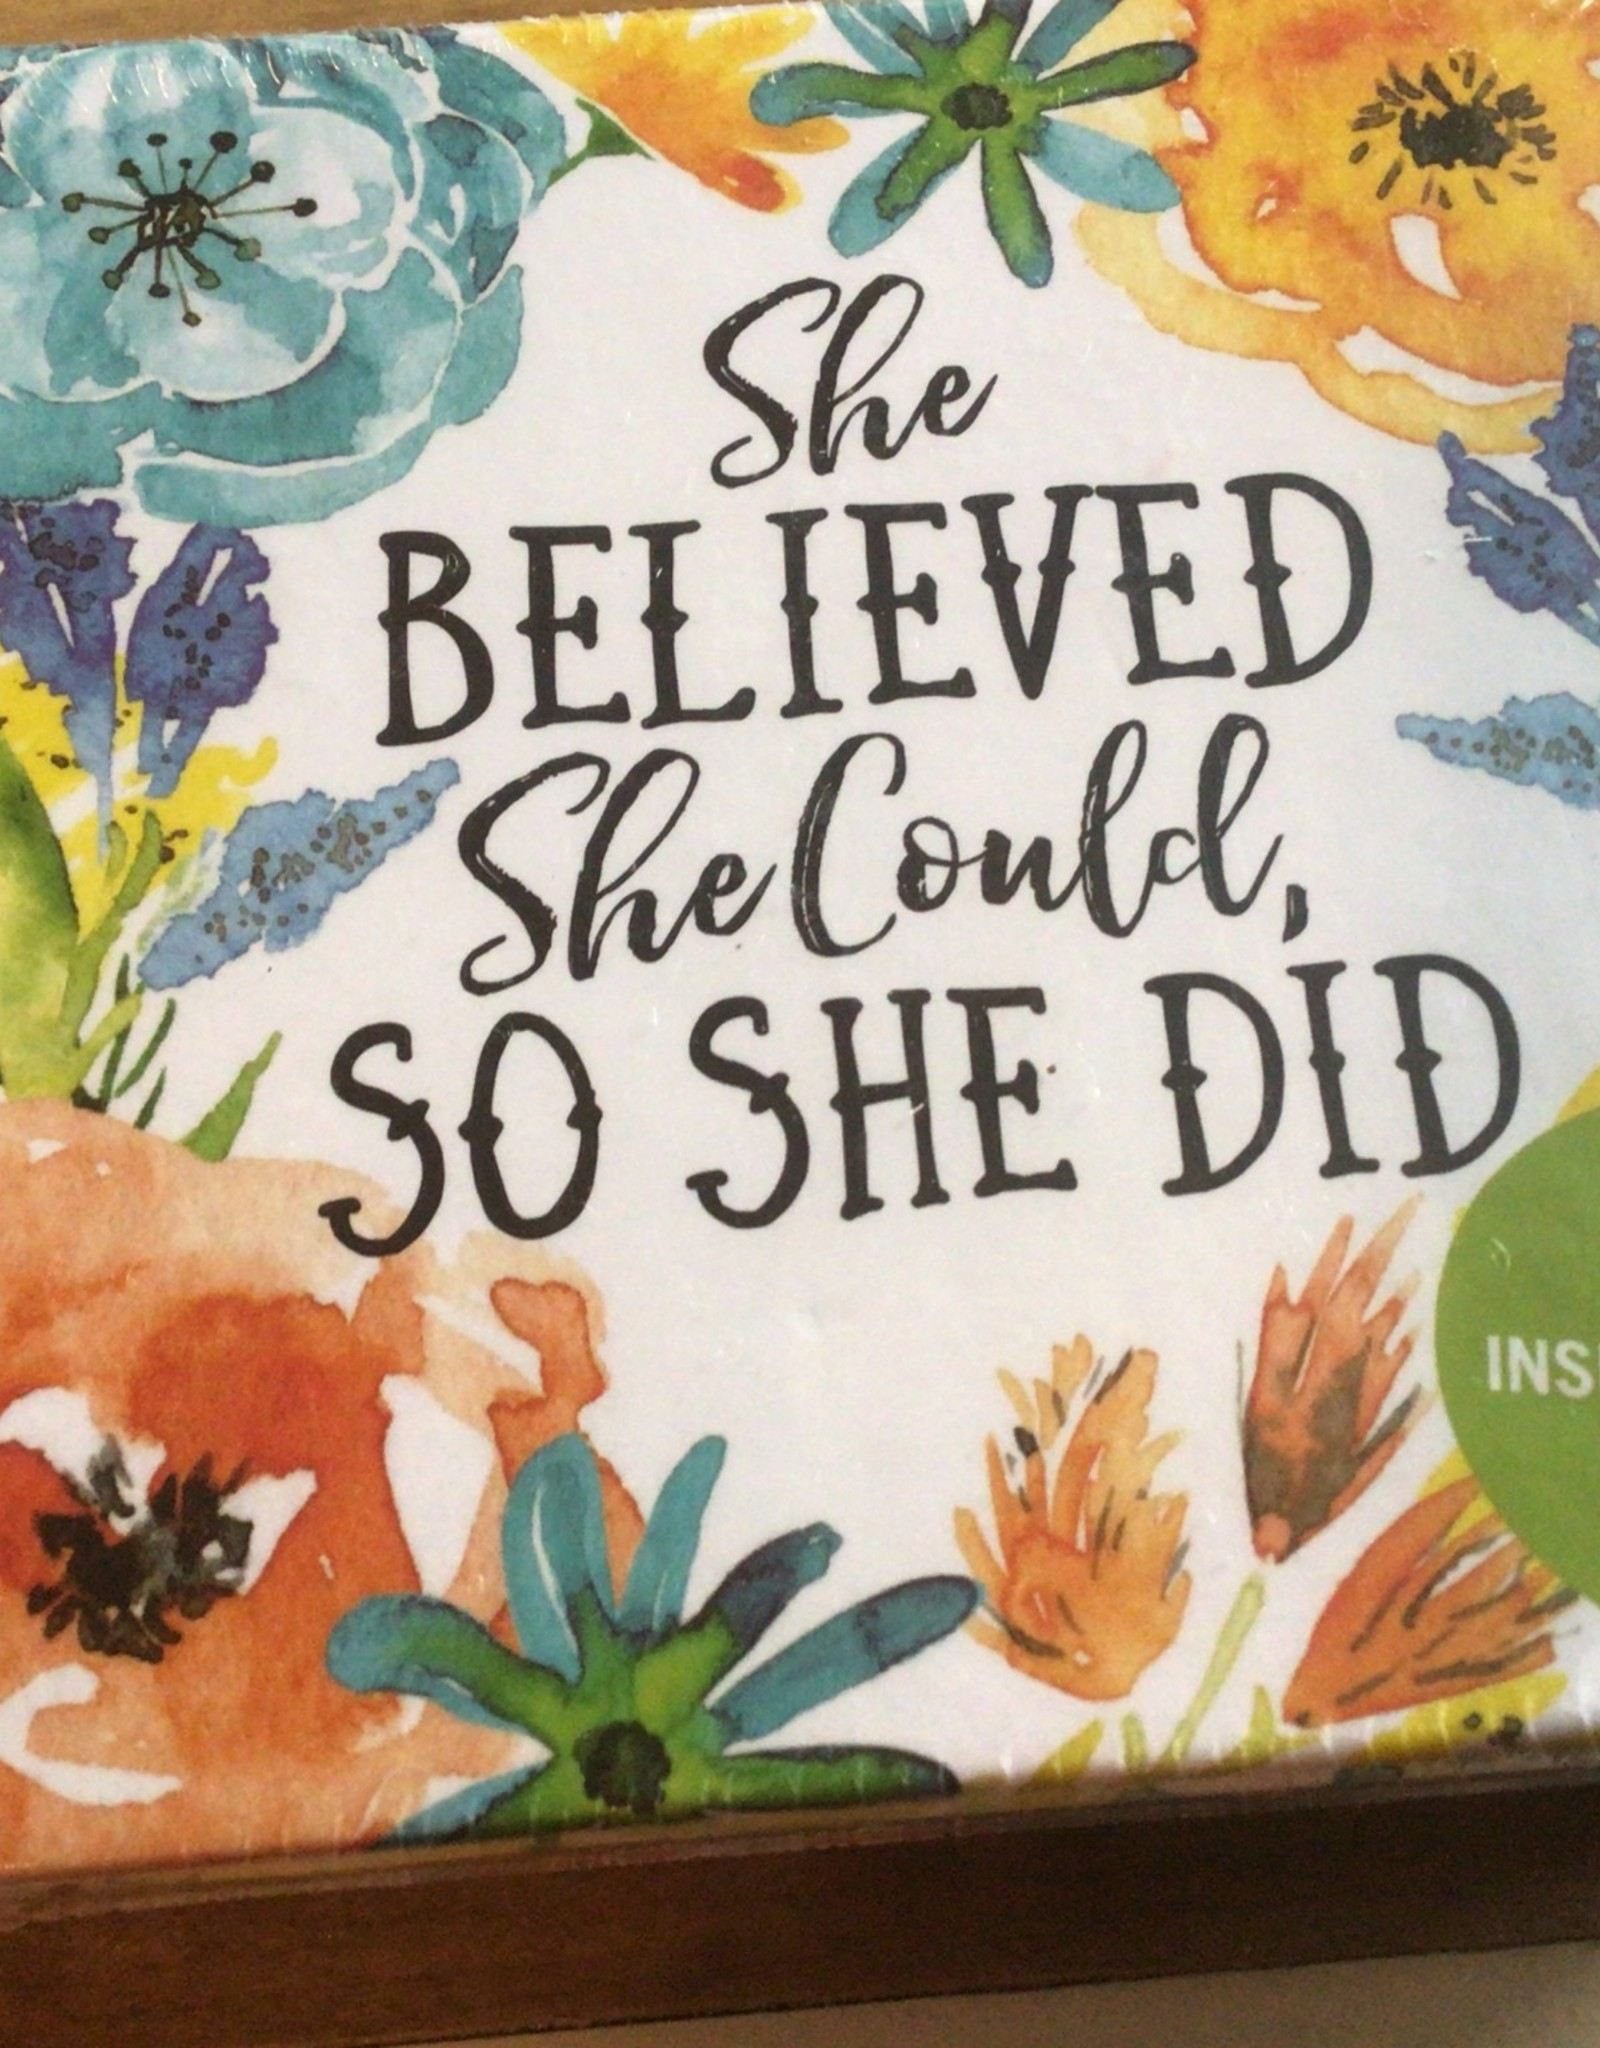 She Believed She Could, So She Did Insight Cards